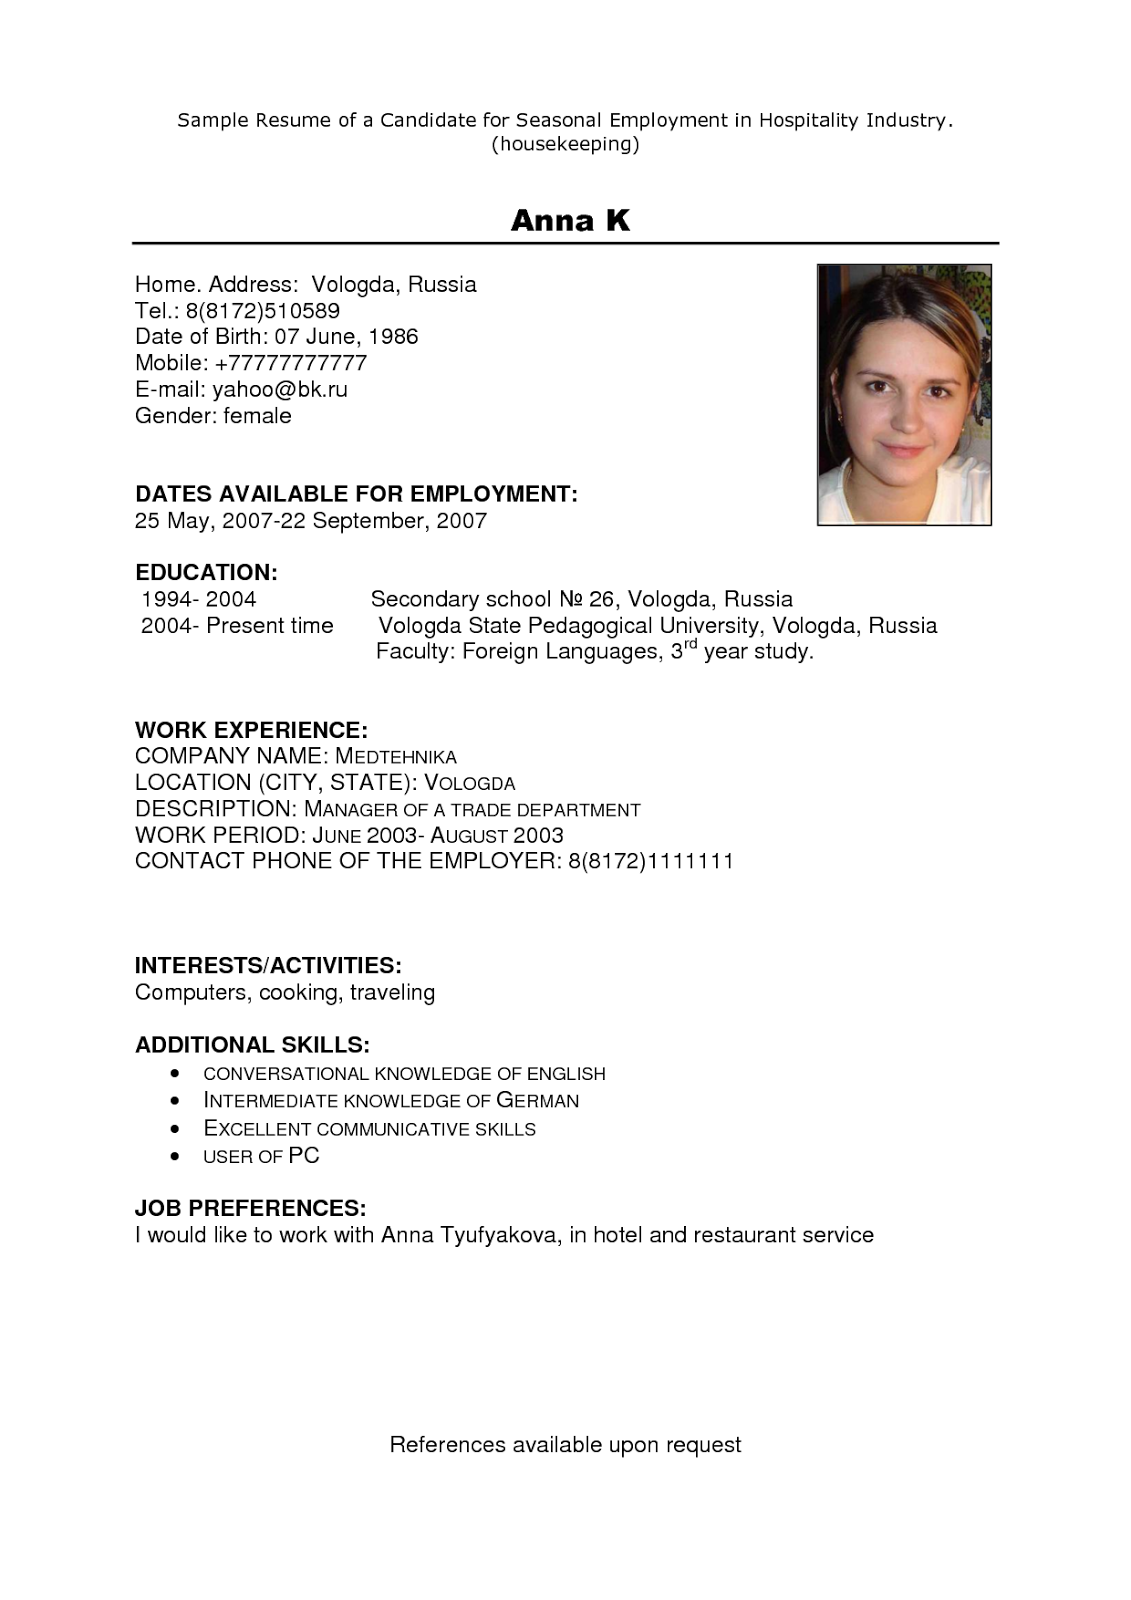 resume templates examples resume templates examples zibsi red hot resume resume examples free sample resume template sampleresume assistant resume objective